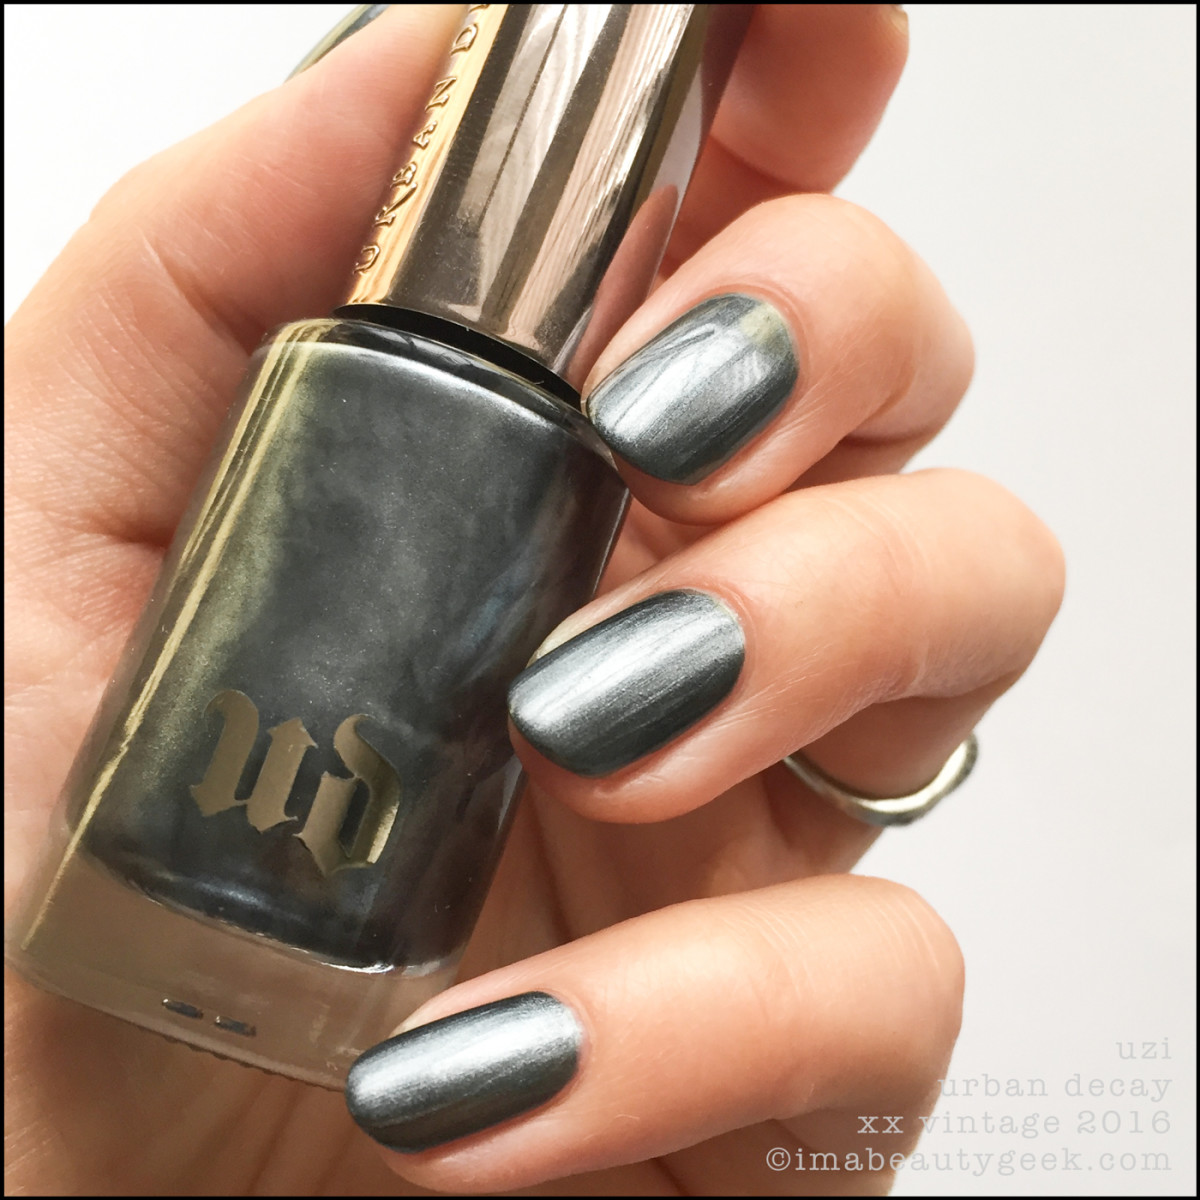 Urban Decay Uzi Nail Polish Vintage Pollish Swatches 2016